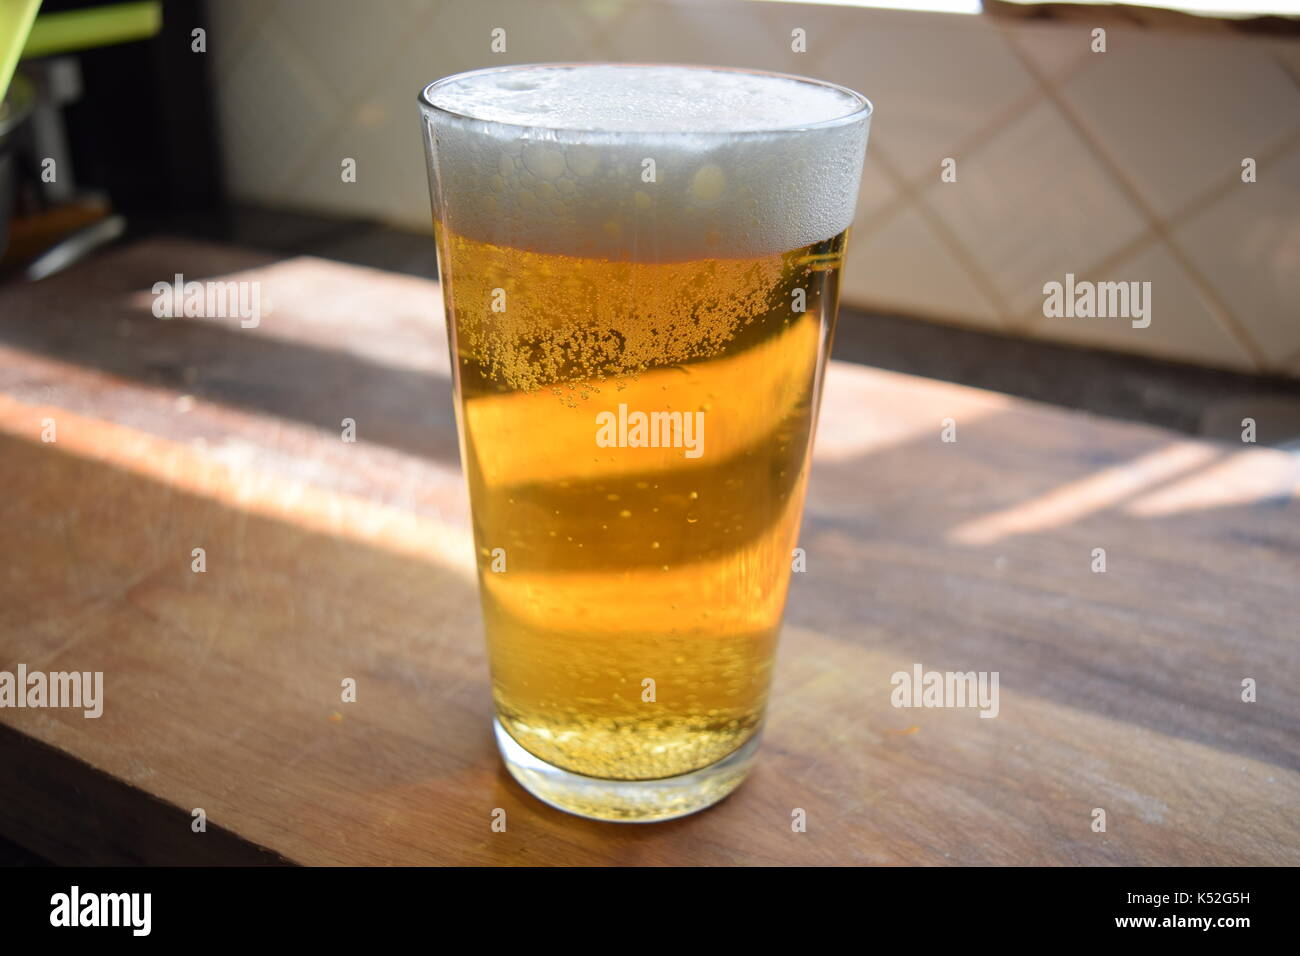 Tall pint of beer on a wooden surface - Stock Image